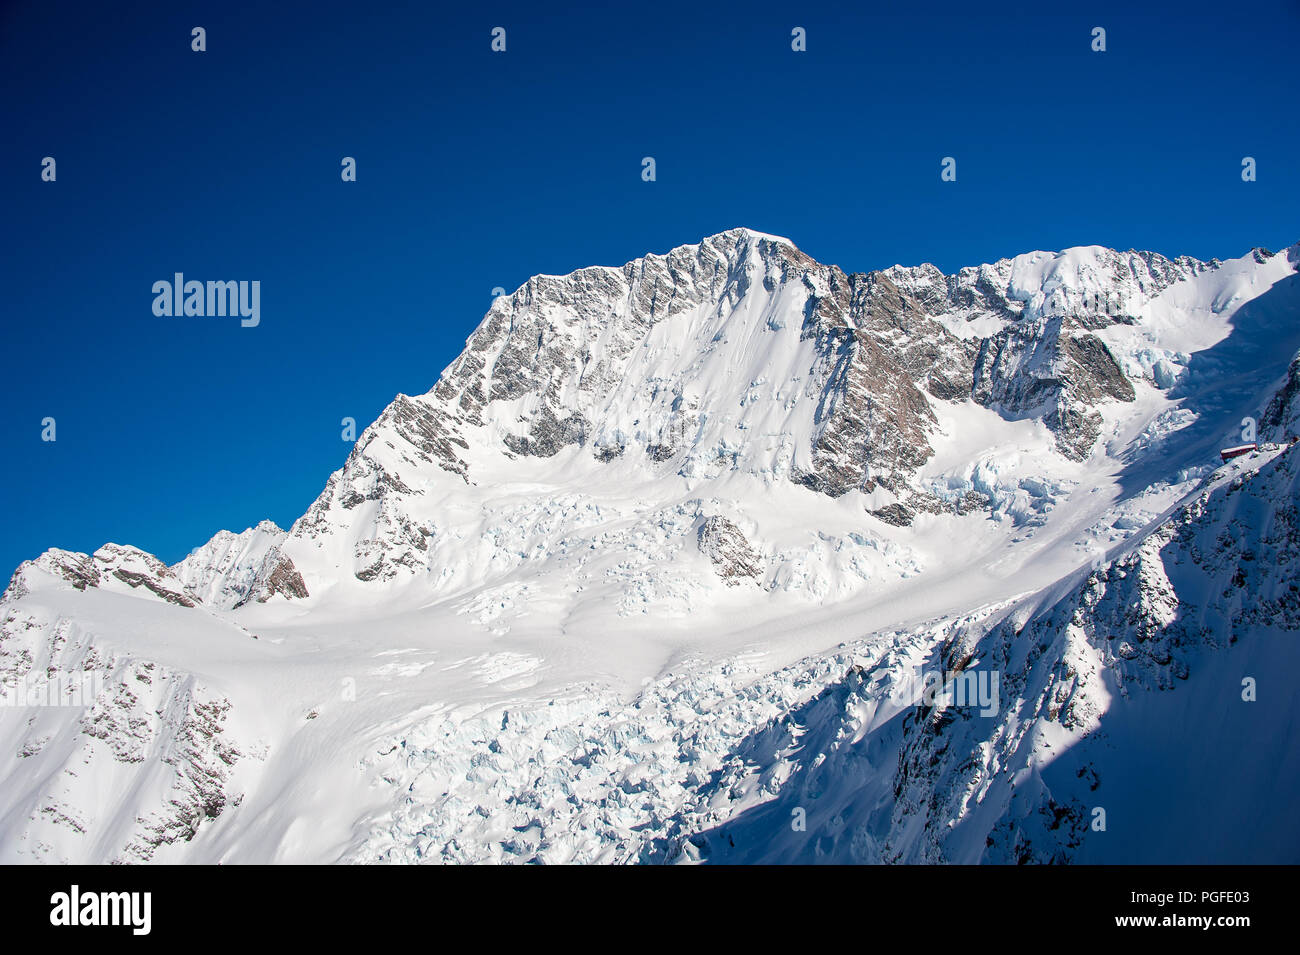 Aerial view to the Mueller Hut on Mt Ollivier, the Mount Cook National Park, New Zealand. Spectacular scenery with red lodge perched on a snowy rise - Stock Image